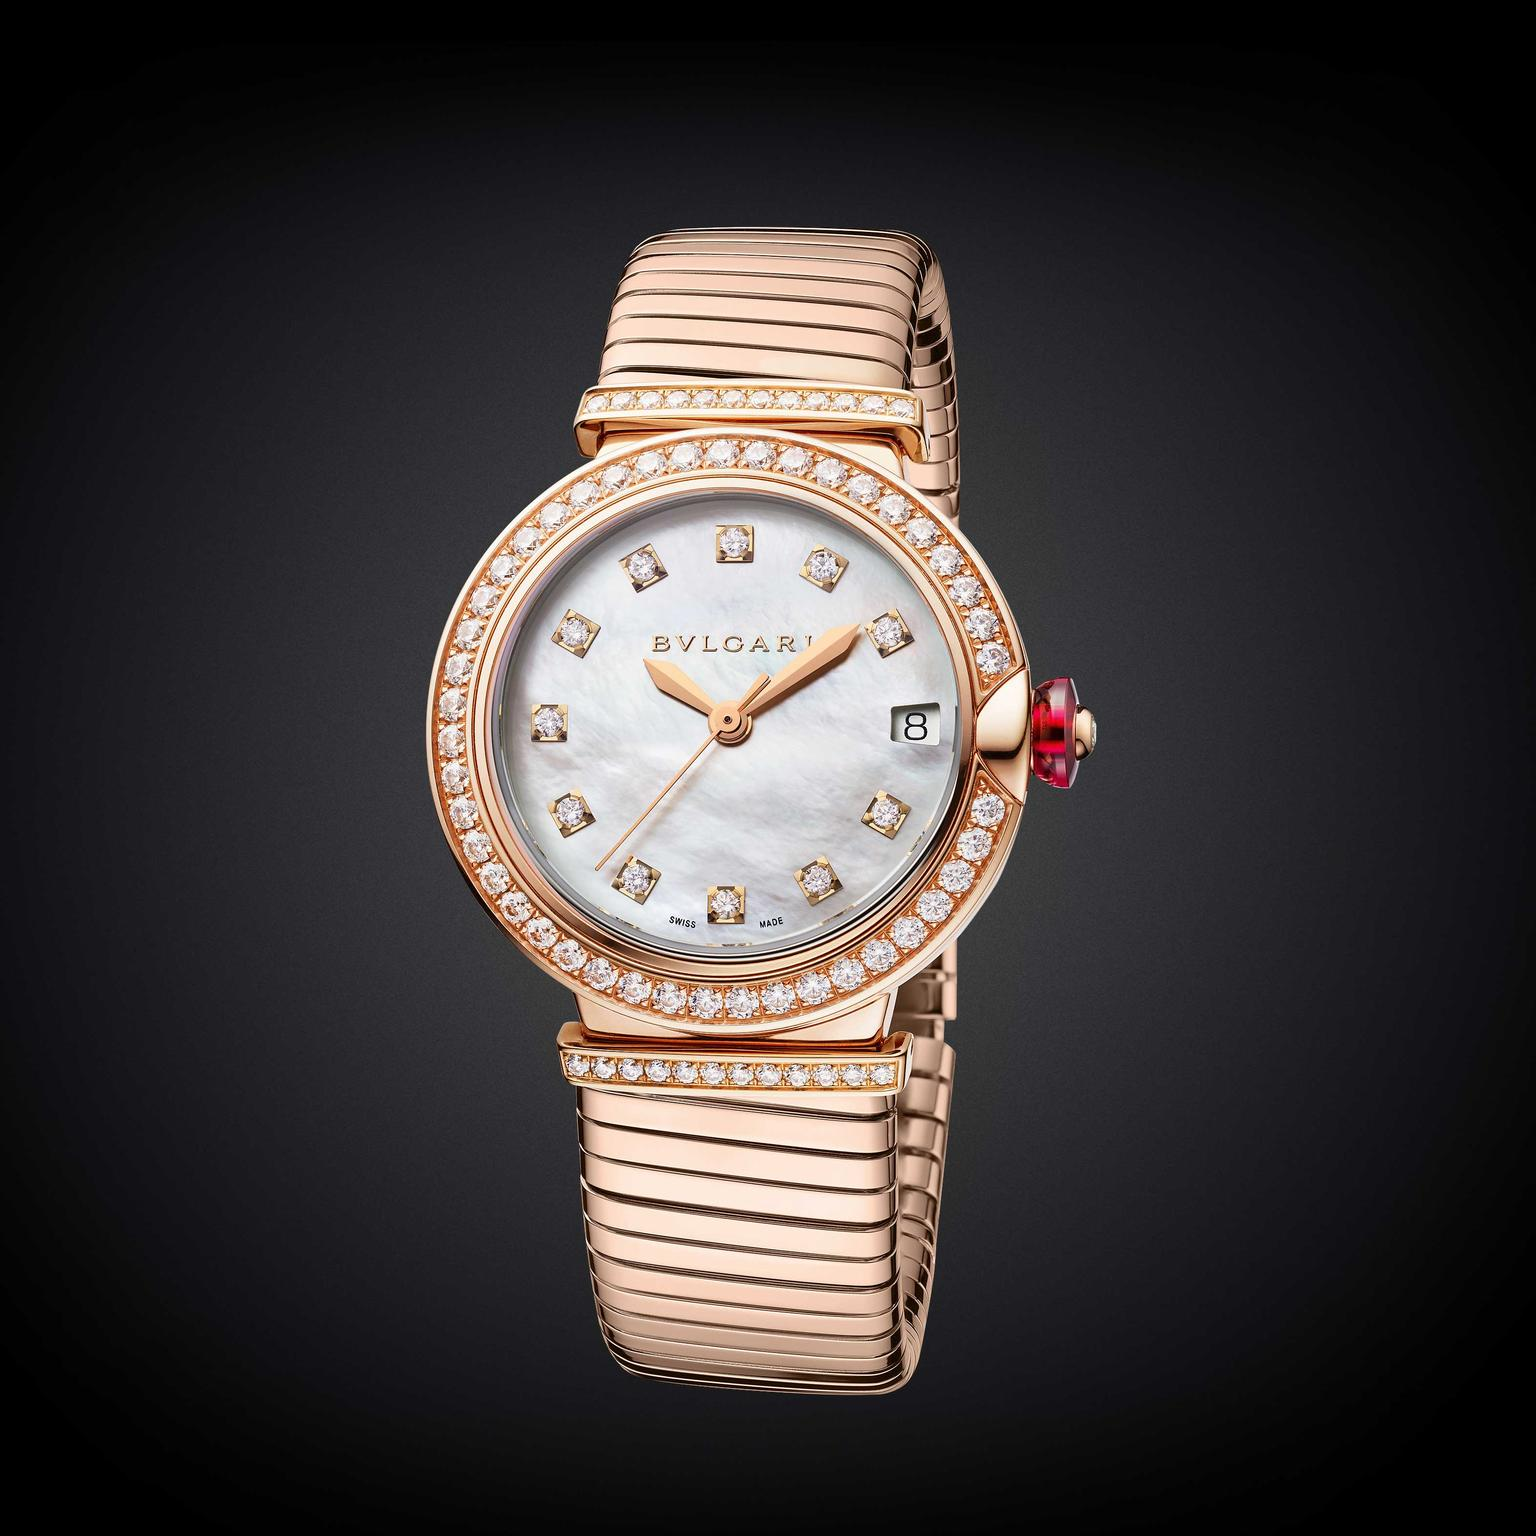 Bulgari Lvcea Tubogas 33mm rose gold and diamond automatic women's watch 2018 Price €37,500